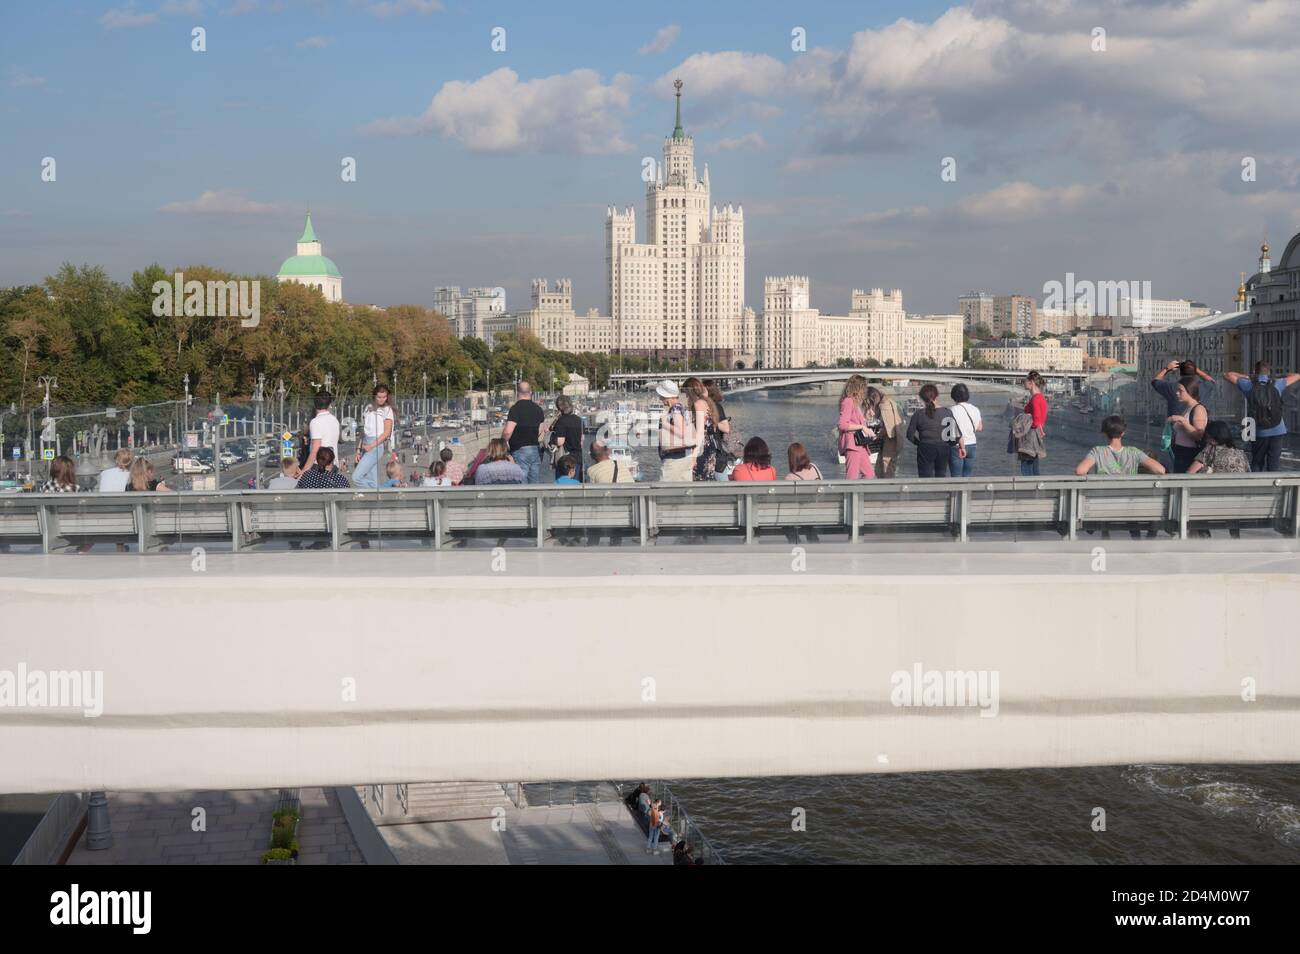 Tourists on the River Overlook, 70-metres long concrete console in Zaryadye park in central Moscow, Russia, against one of Seven Sisters skyscrapers Stock Photo